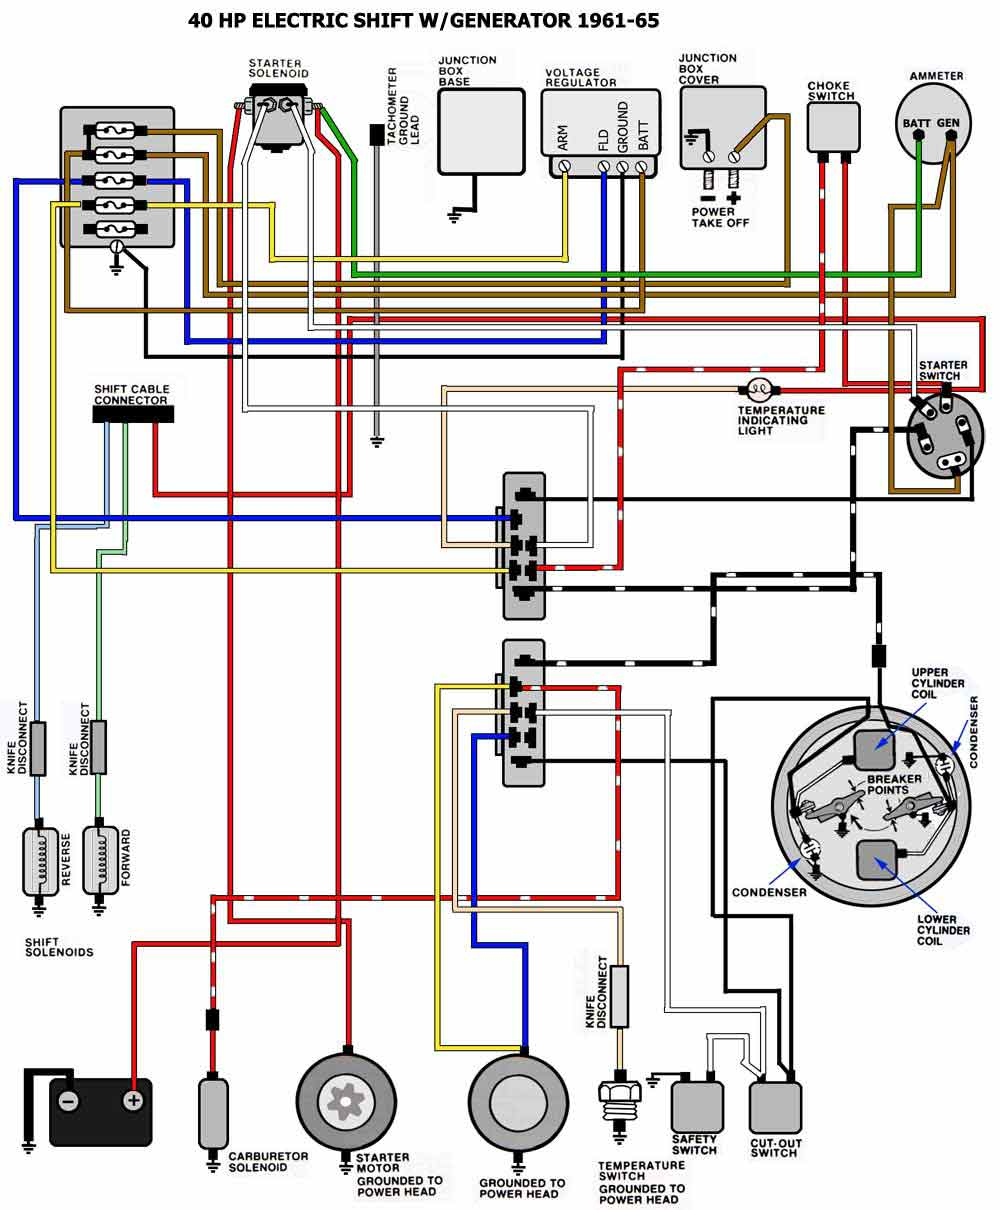 hight resolution of mercury mariner wiring diagram wiring diagram todays75 hp mariner outboard wiring diagram wiring diagram for chrysler